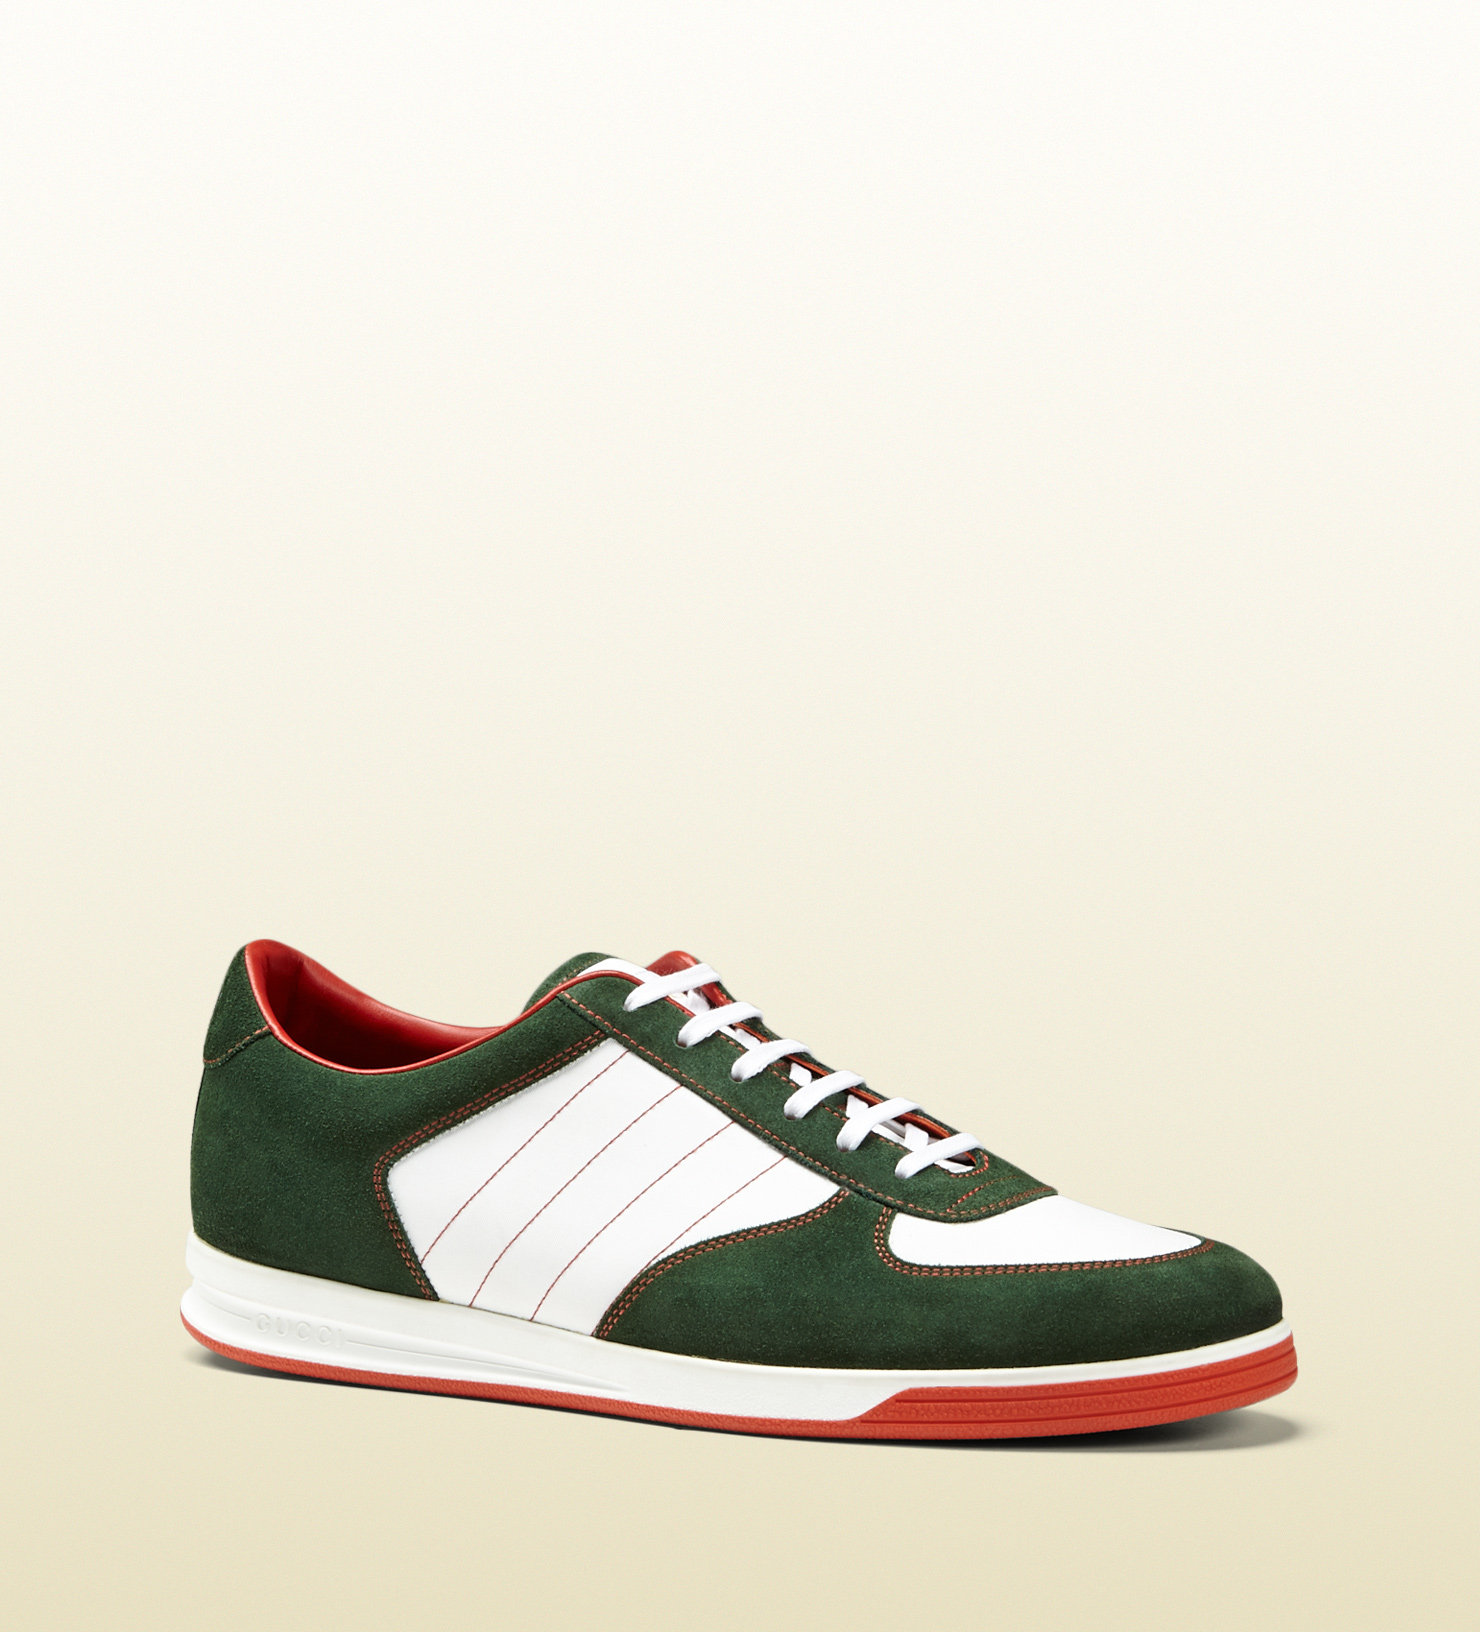 gucci 1984 sneakers. gallery gucci 1984 sneakers e